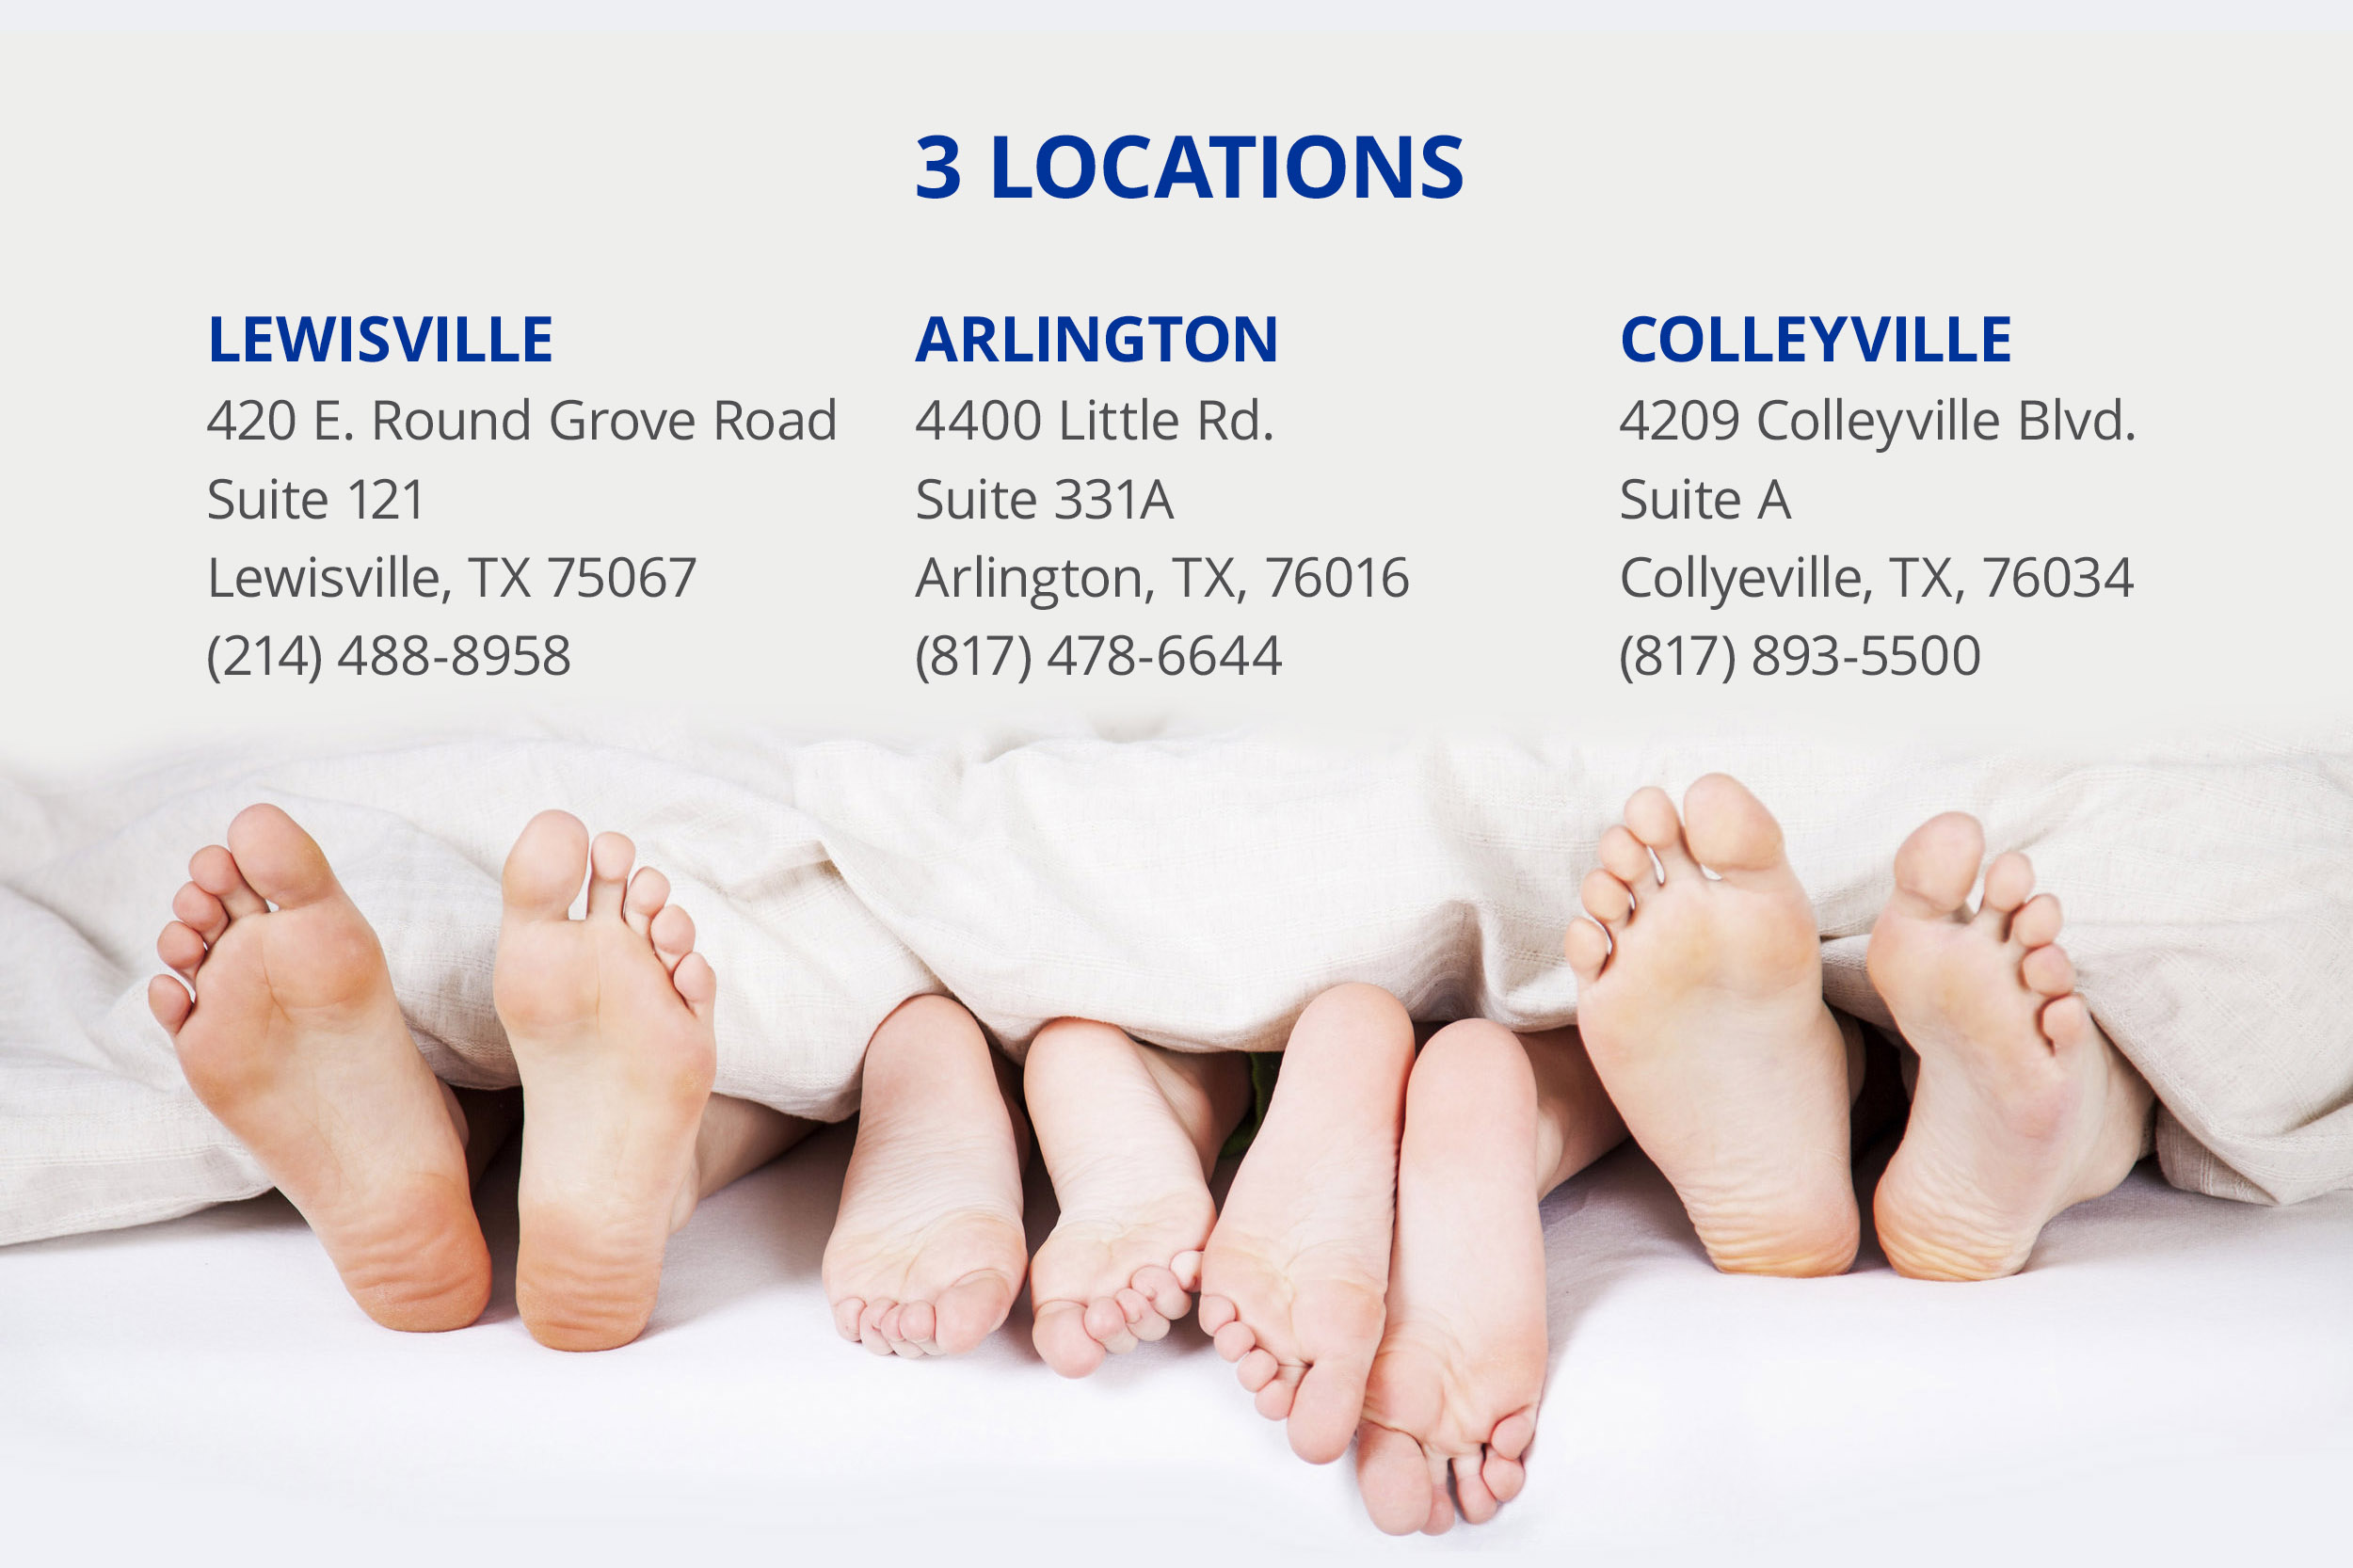 mattress deals in dallas ft worth lewisville arlington colleyville